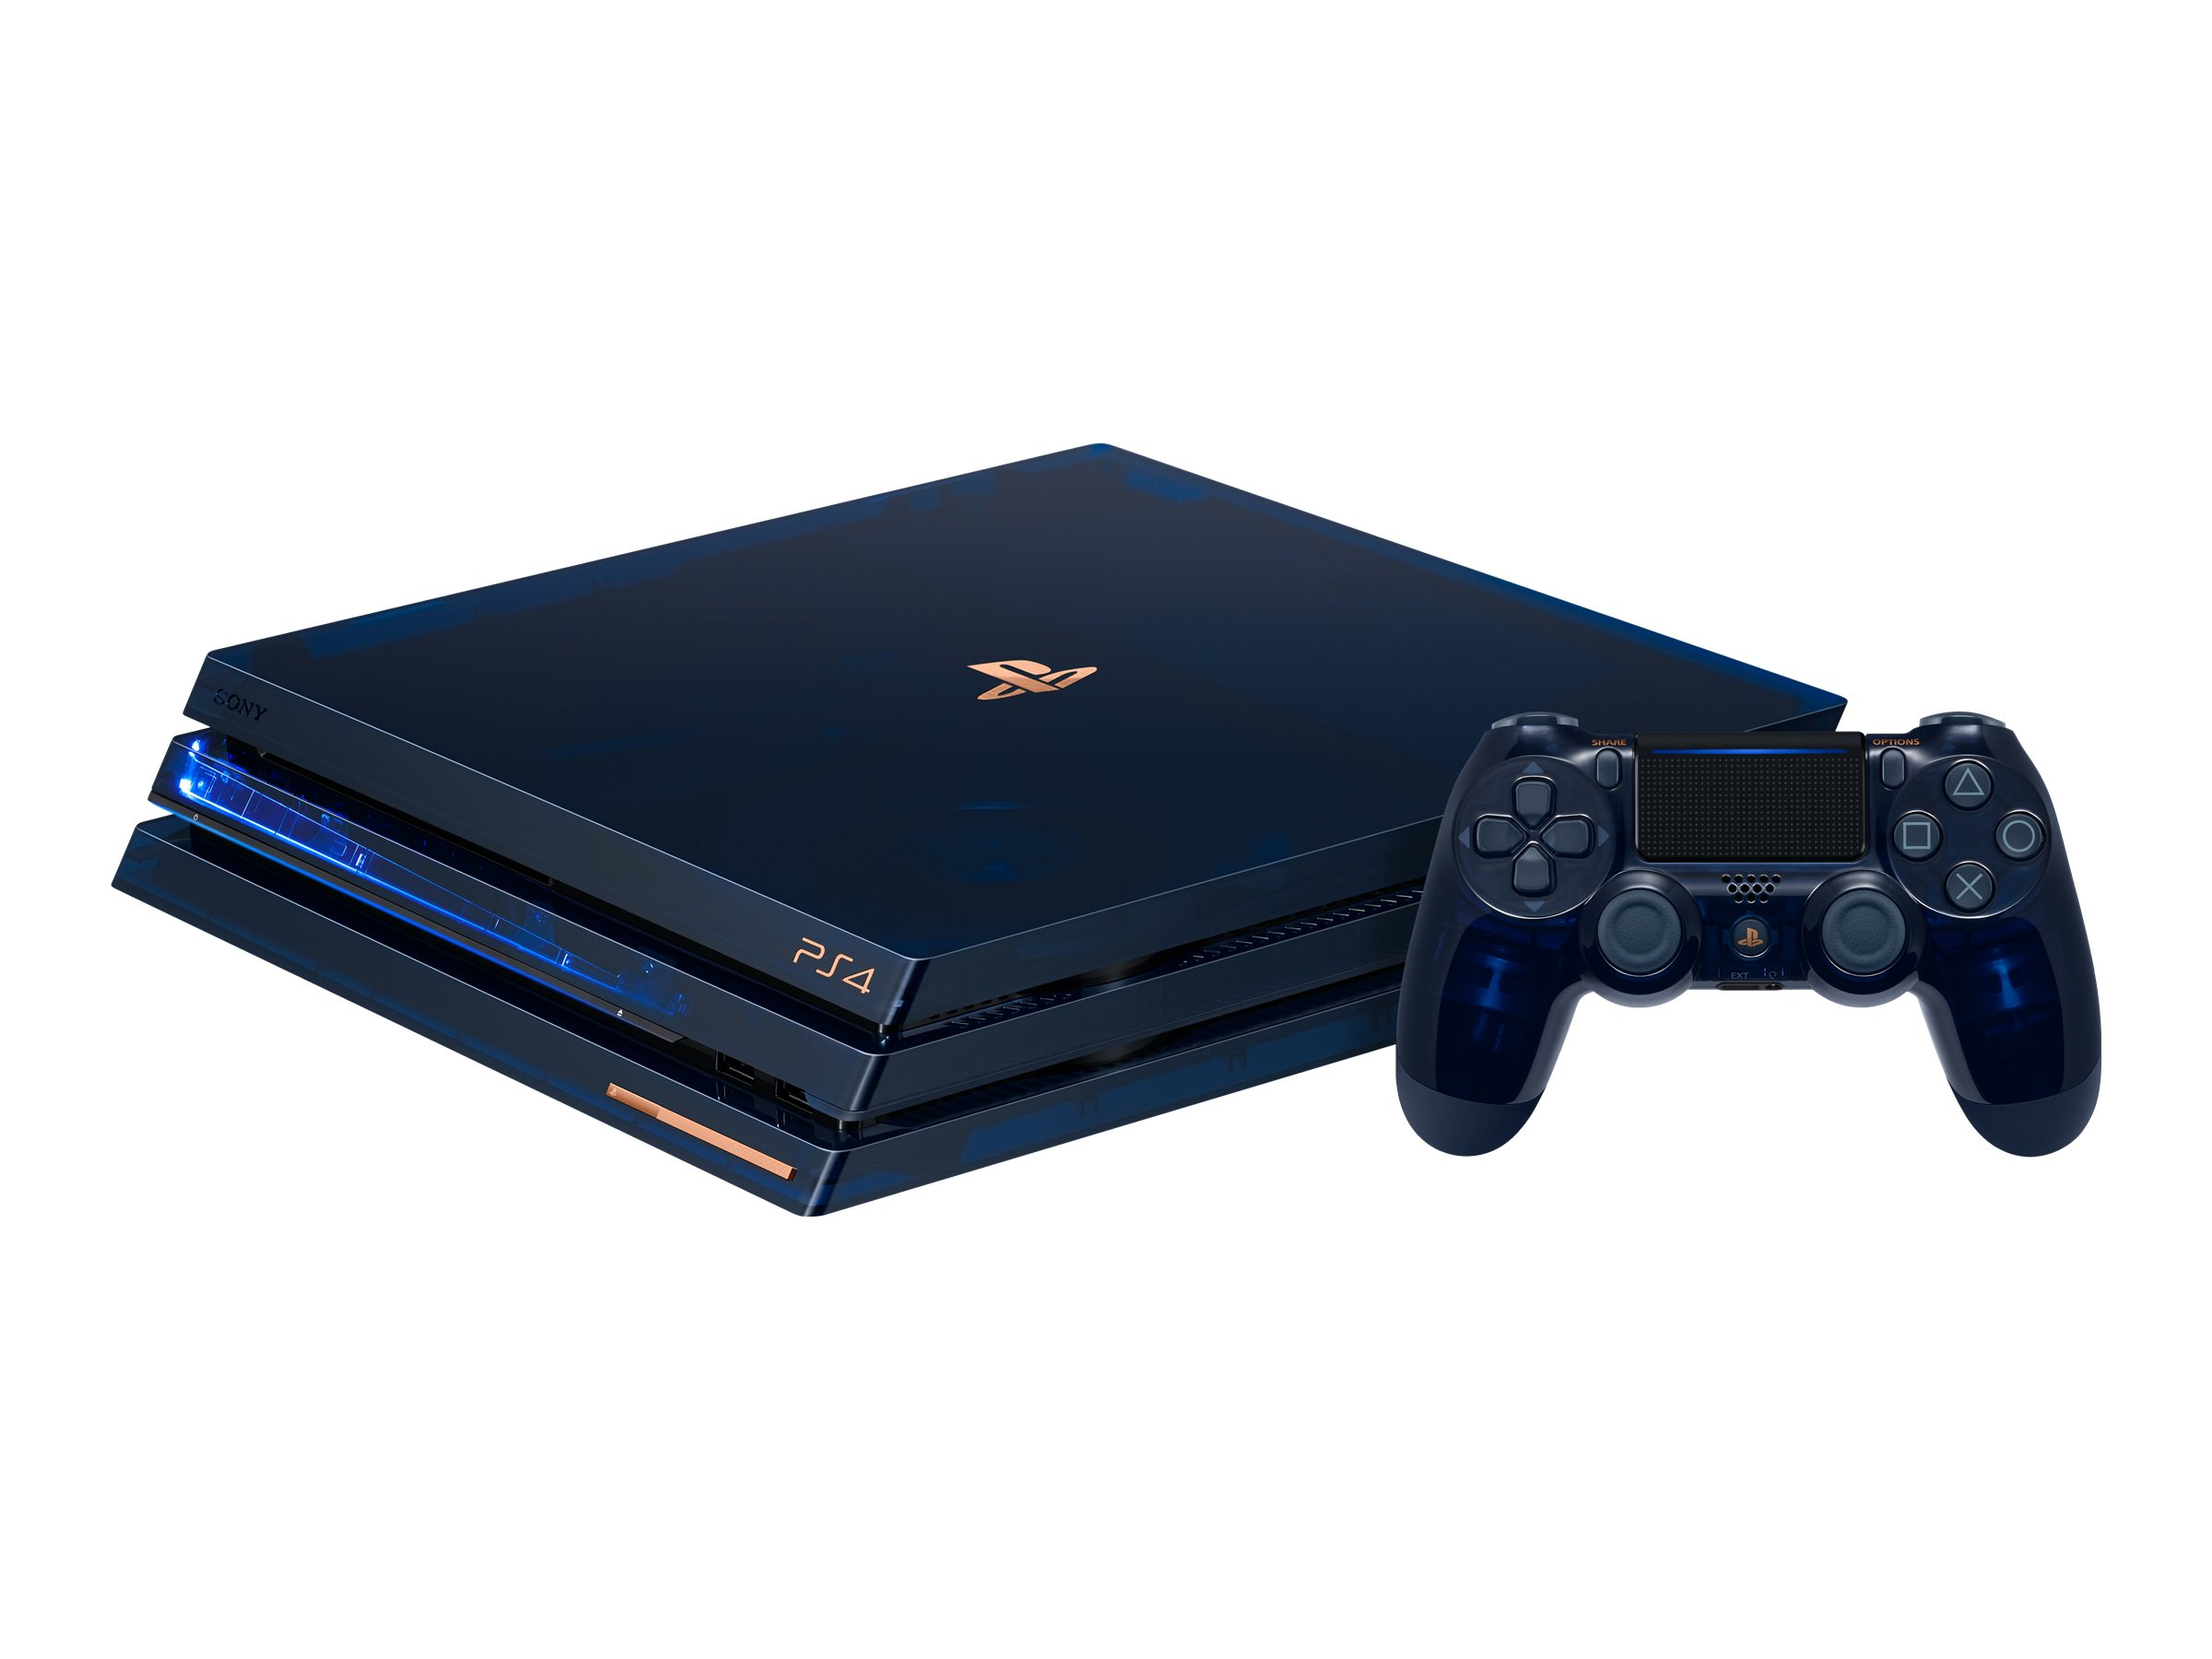 Sony PlayStation 4 Pro - 500 Million Limited Edition - game console - 2 TB HDD - translucent blue - with PlayStation Ca…